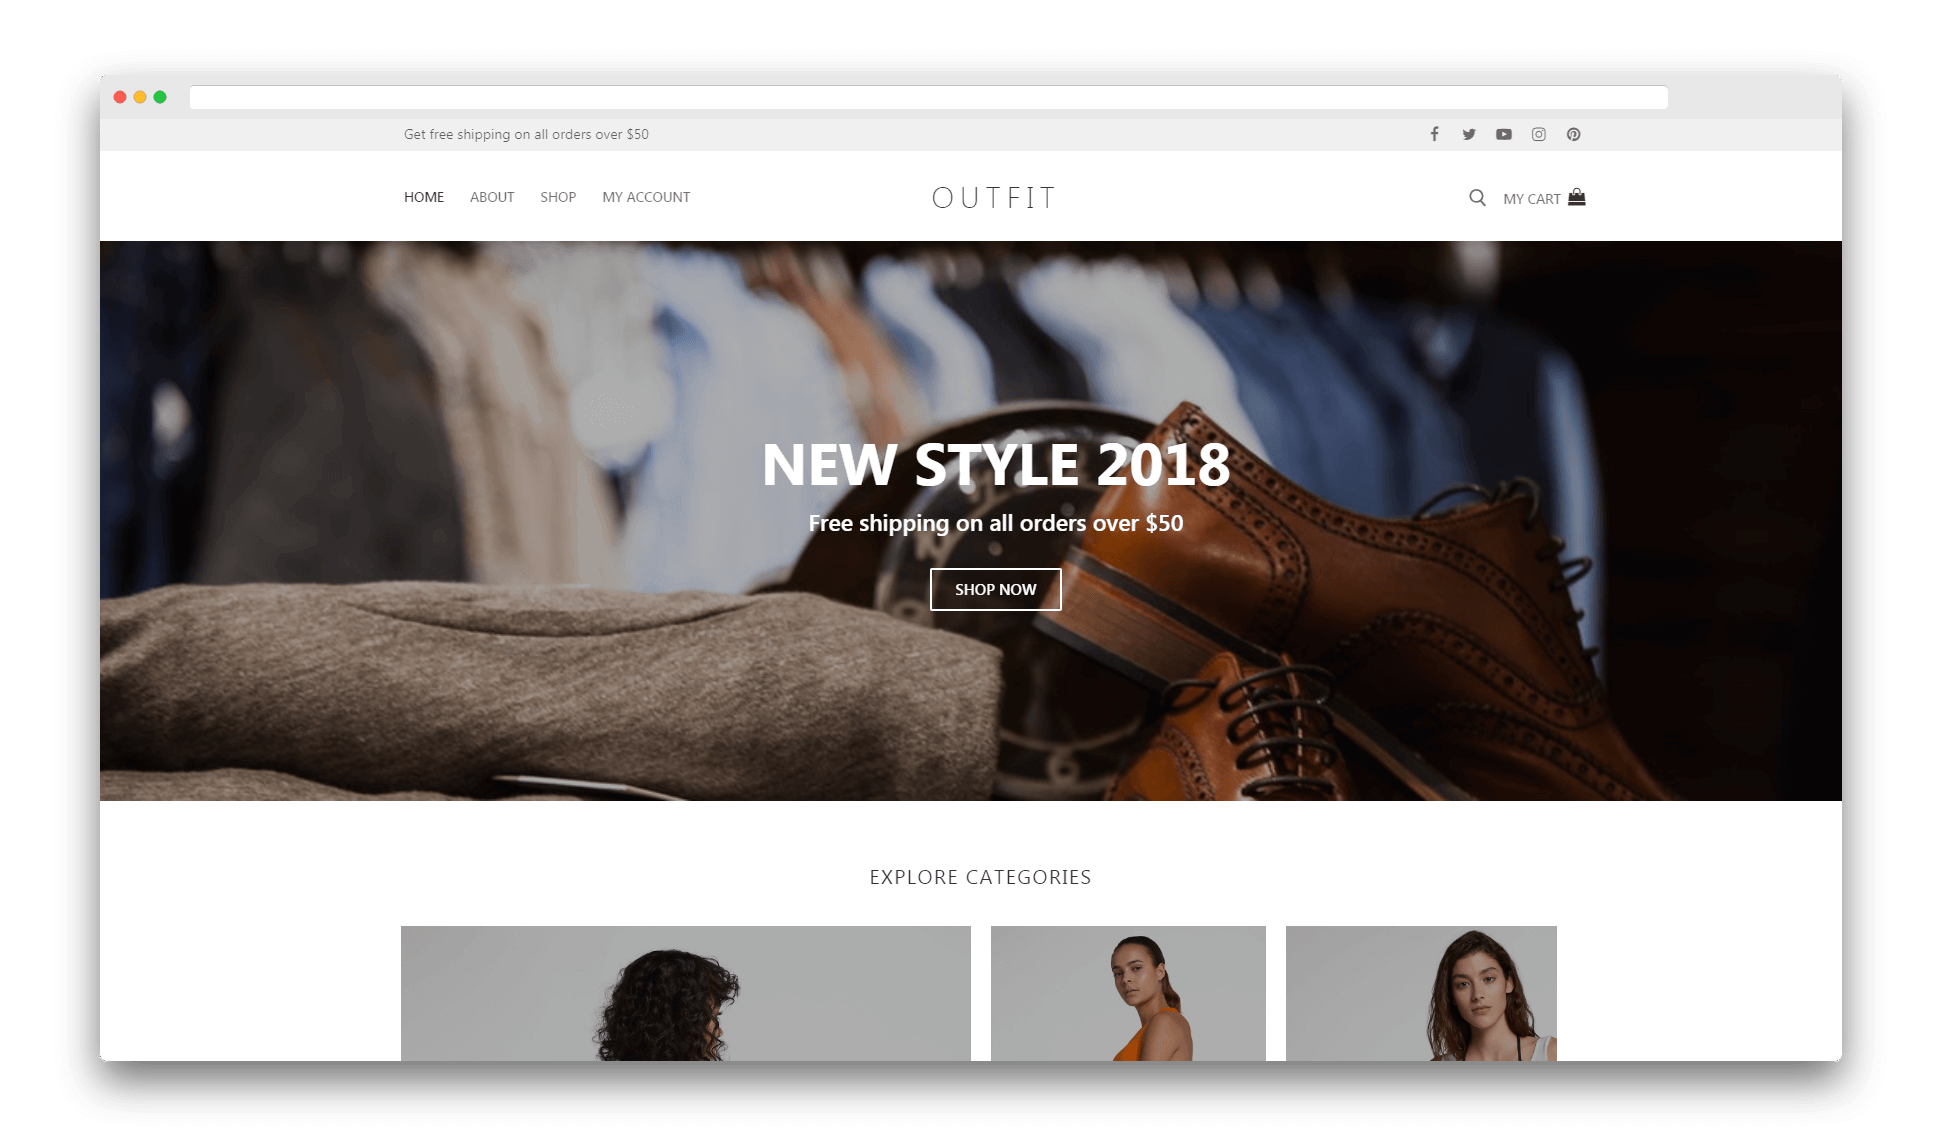 The Customify theme demo.